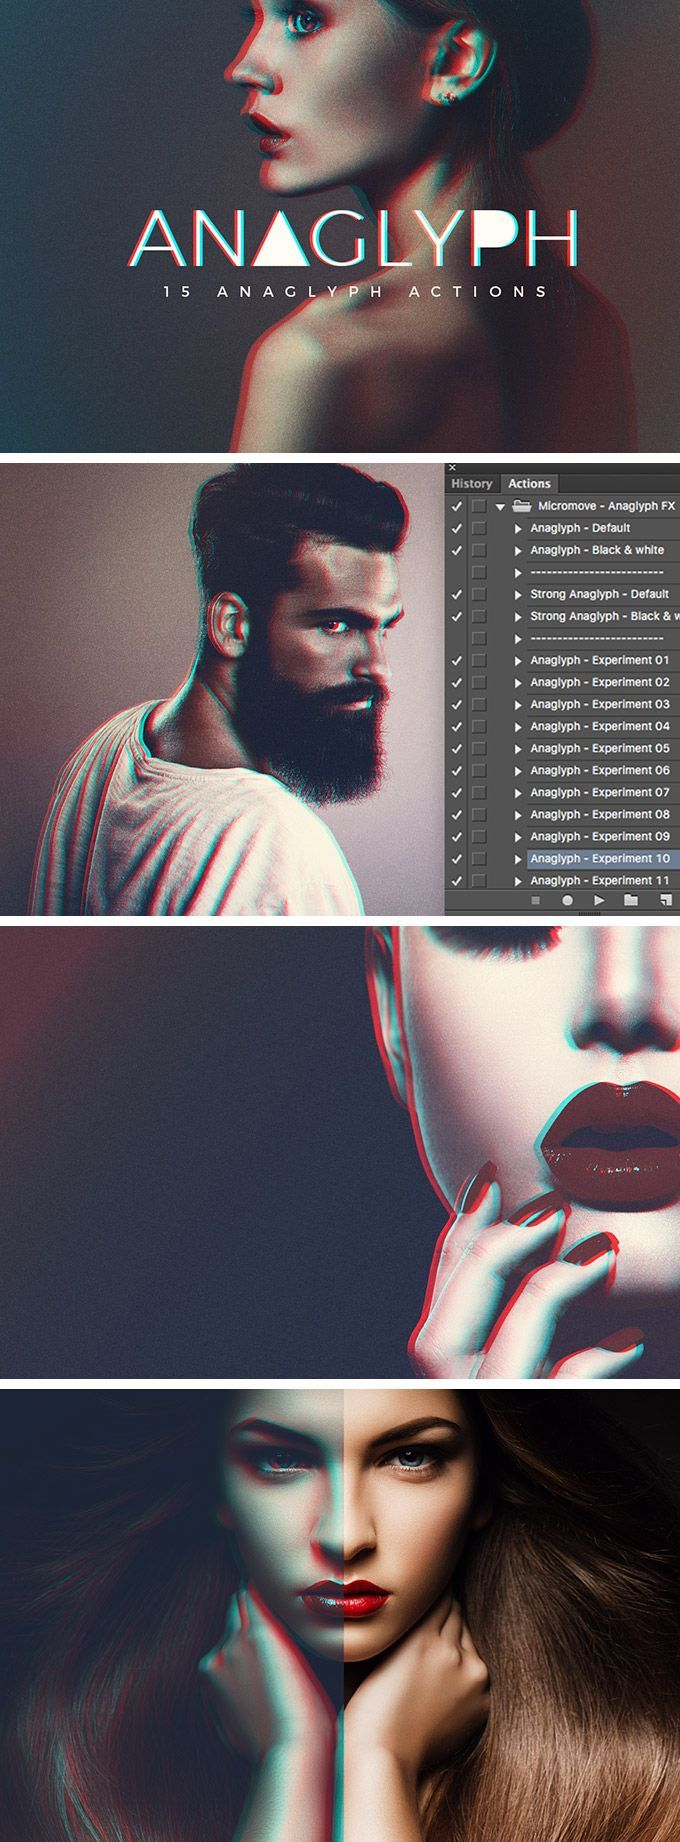 Download free anaglyph photo actions for Photoshop ...